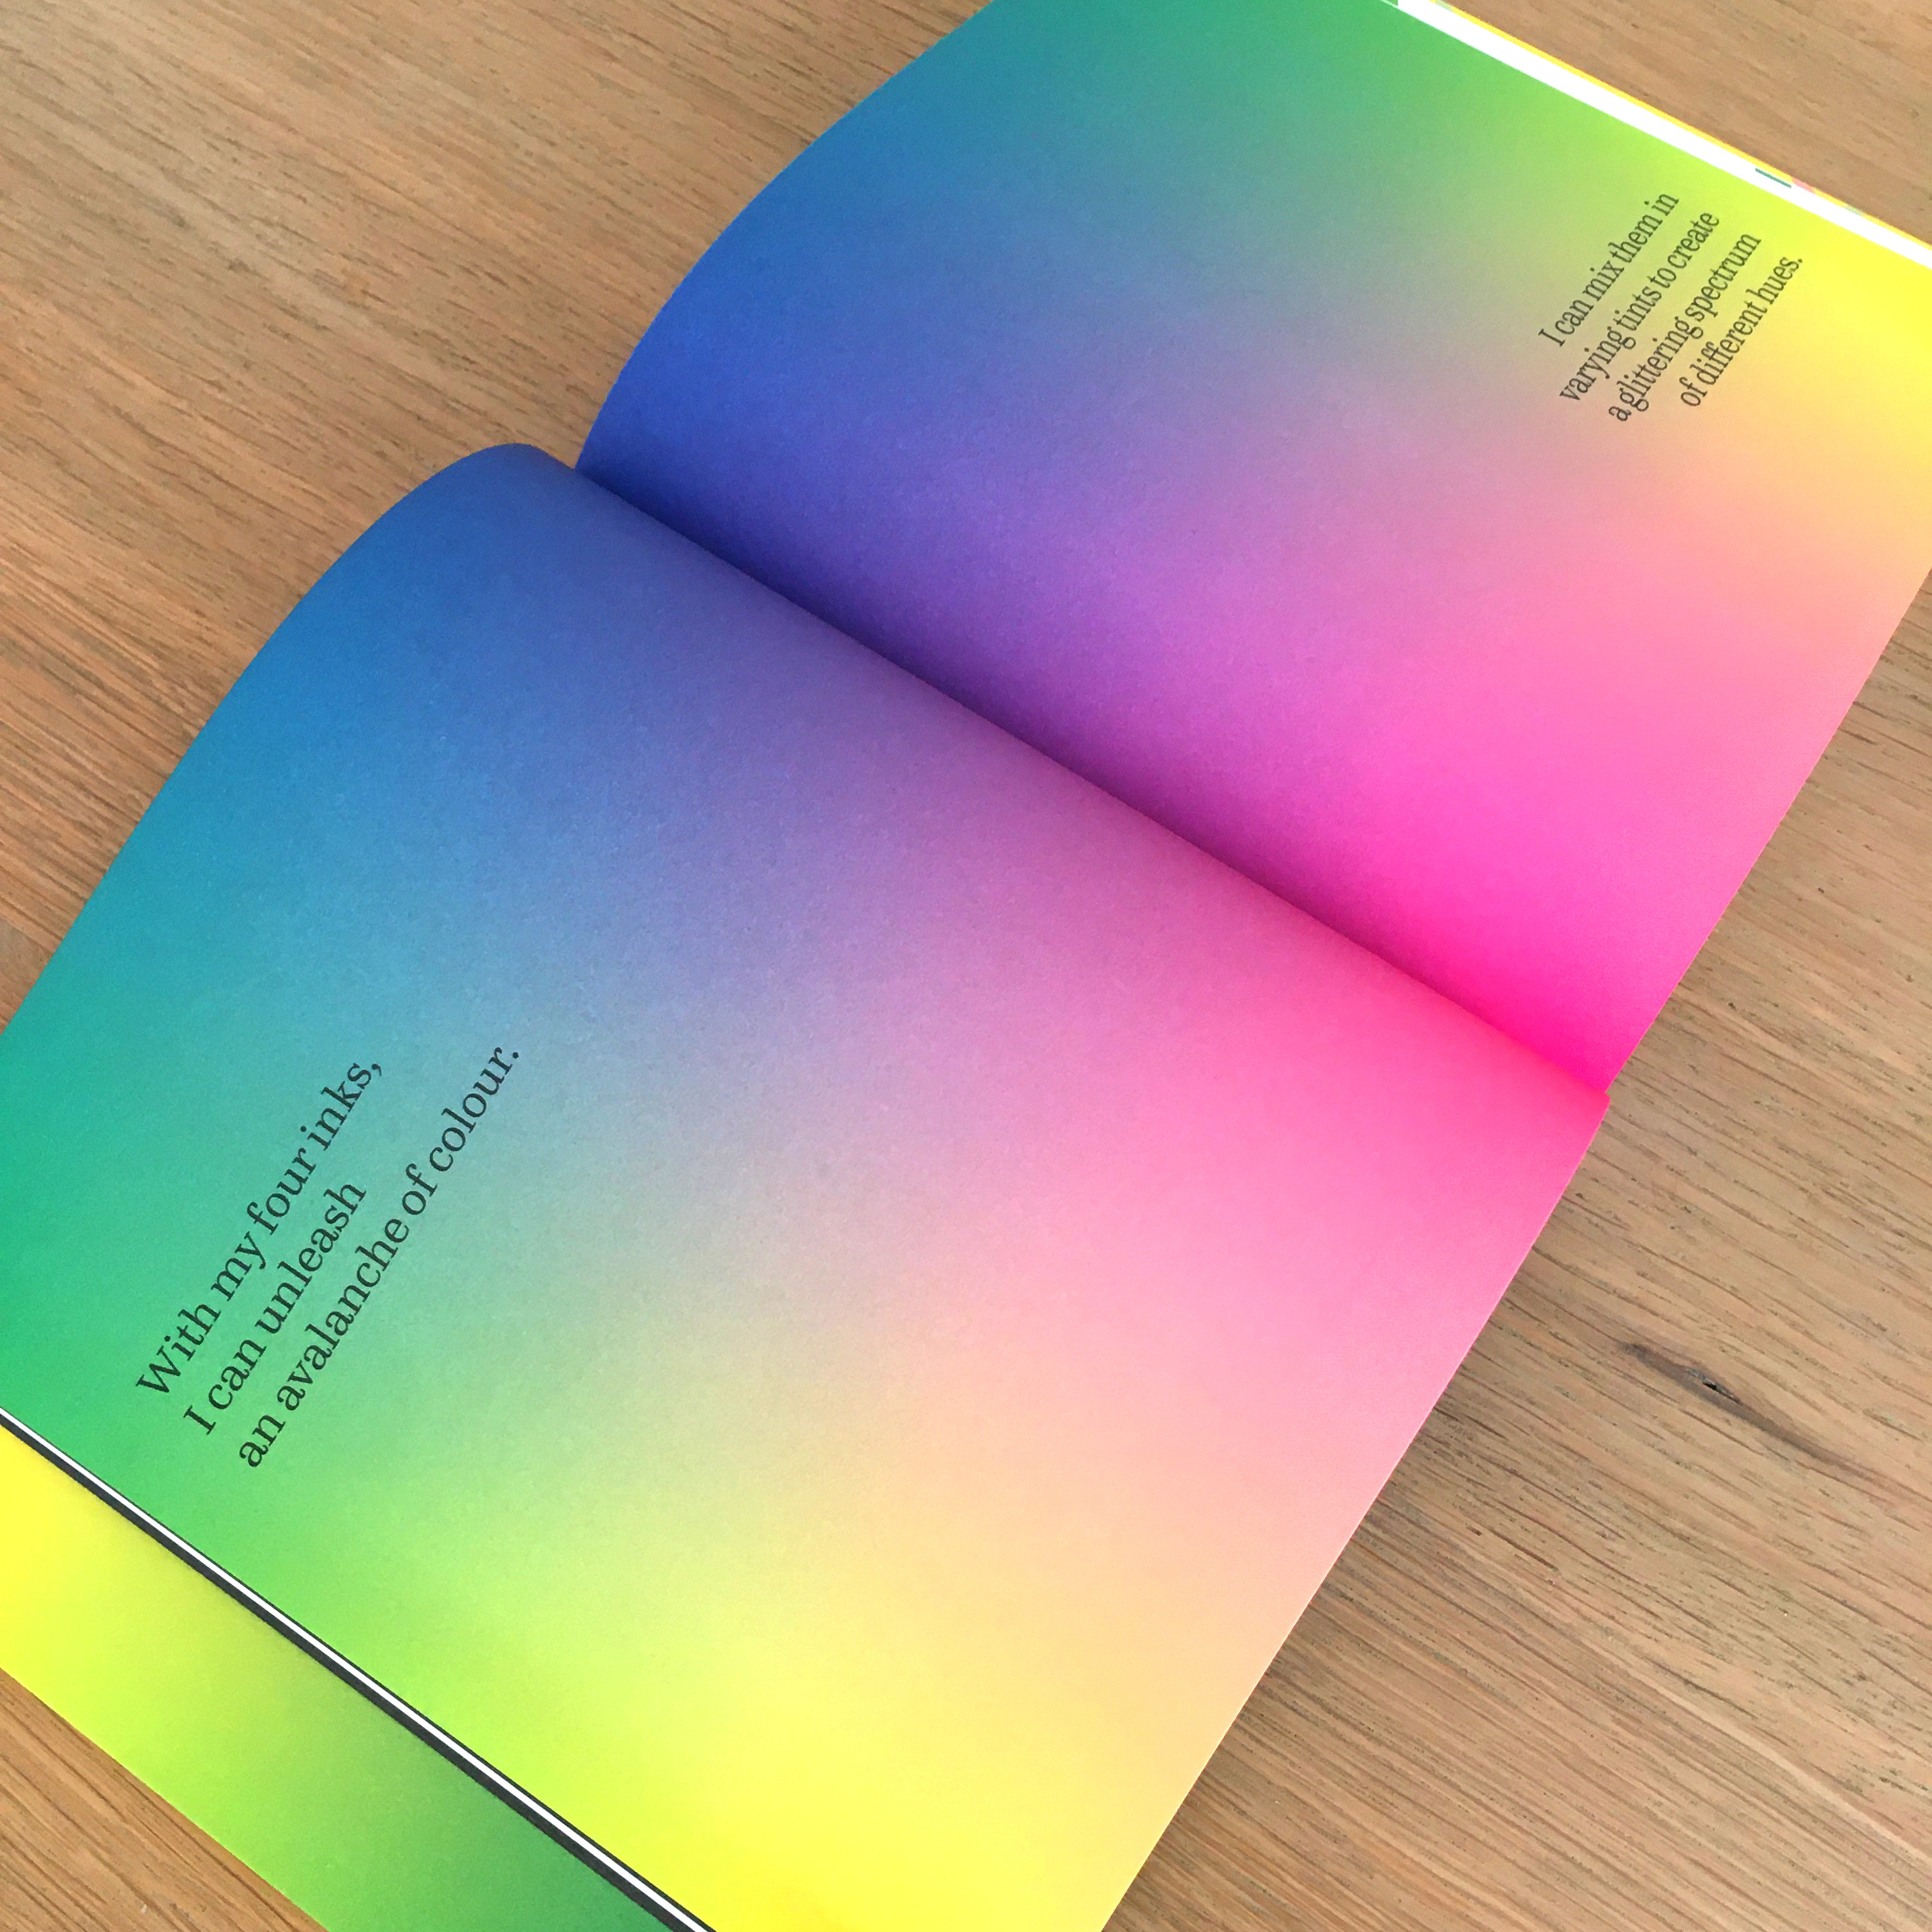 CMYK gradient spread from 'I am a book. I am a portal to the universe.'